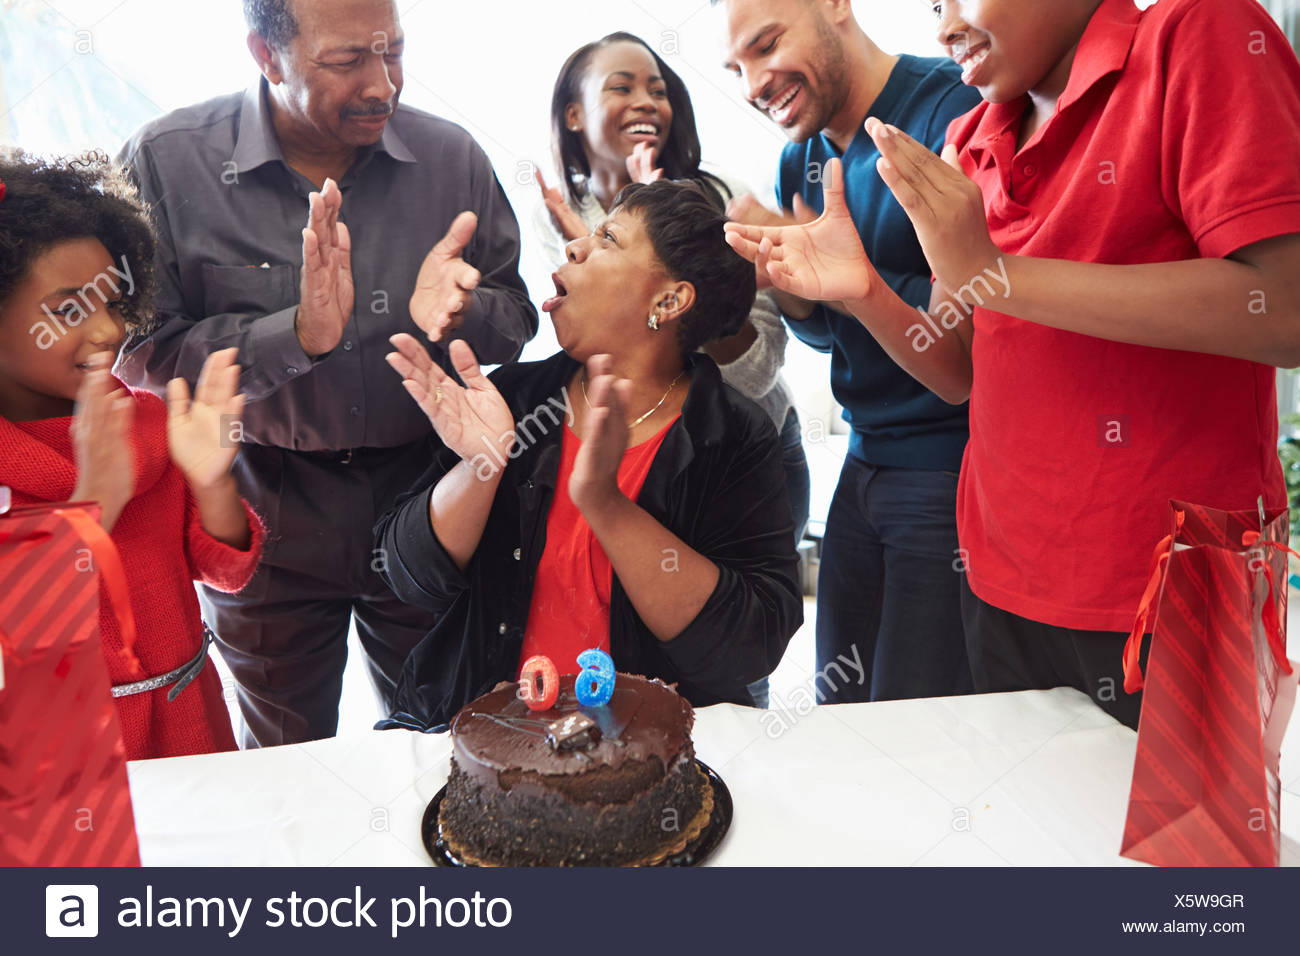 Family Celebrating 60th Birthday Together - Stock Image